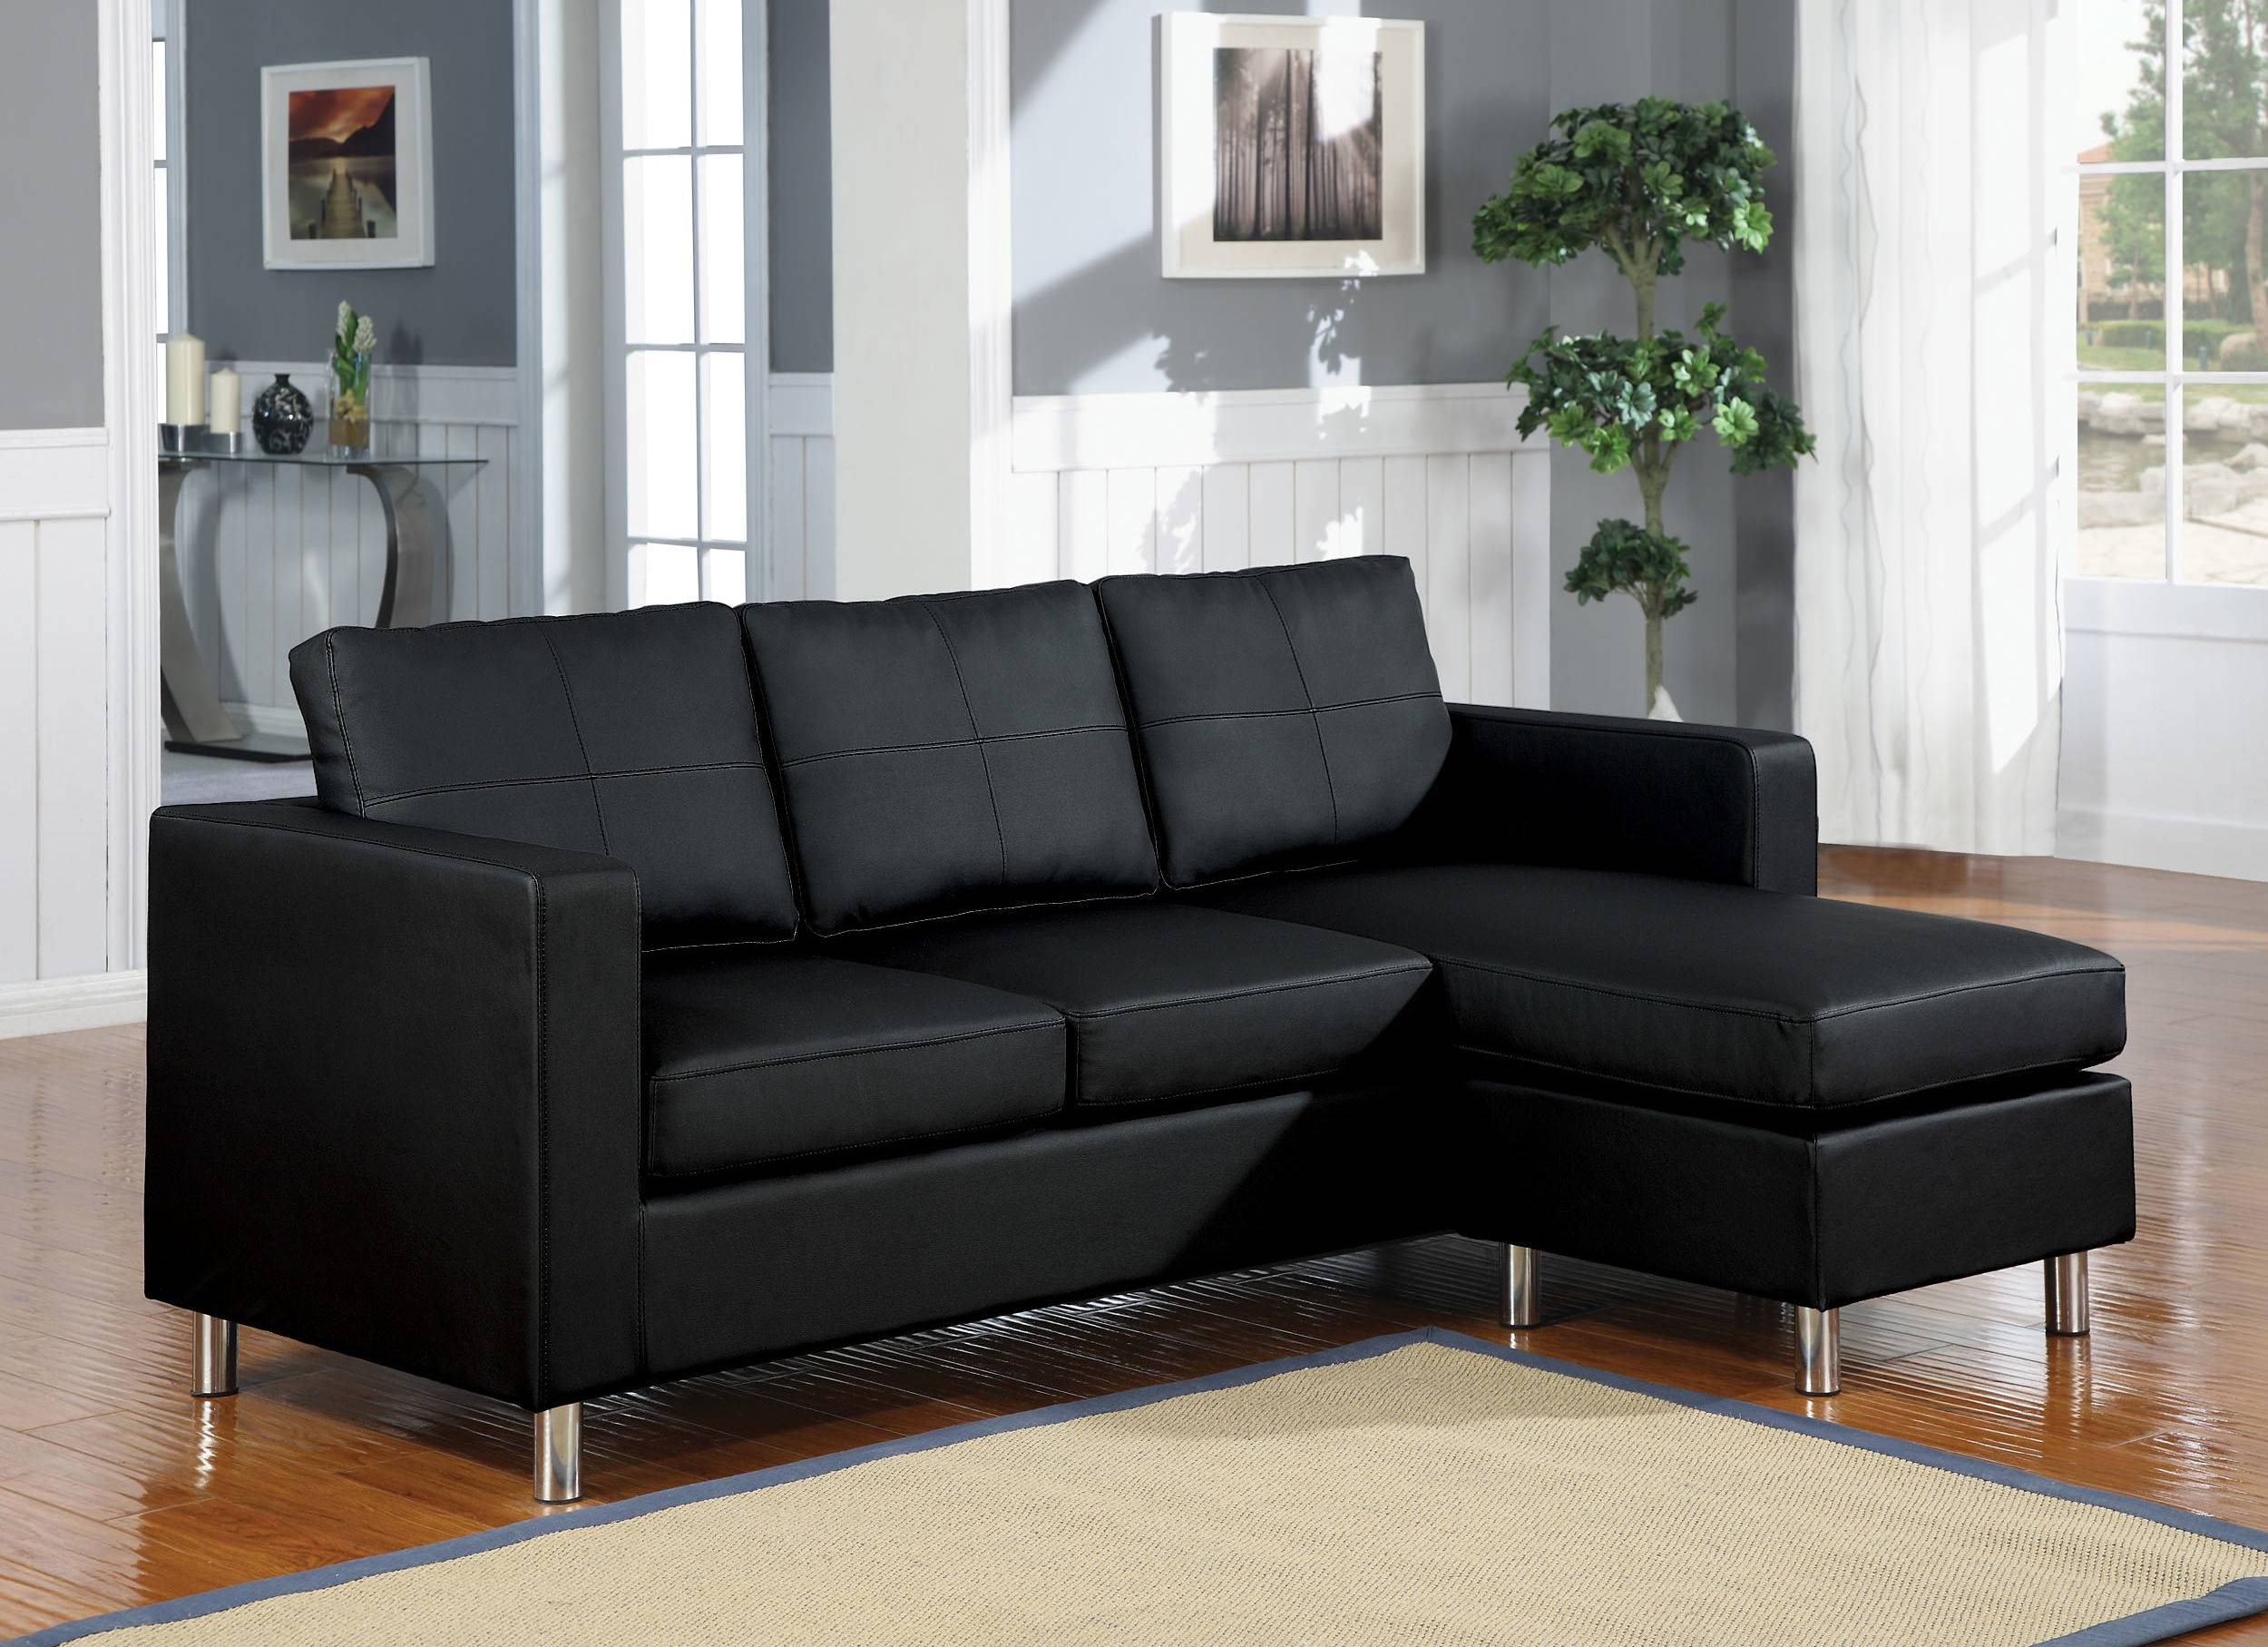 Furniture & Sofa: Perfect Small Spaces Configurable Sectional Sofa with regard to Small Sofas With Chaise Lounge (Image 5 of 15)